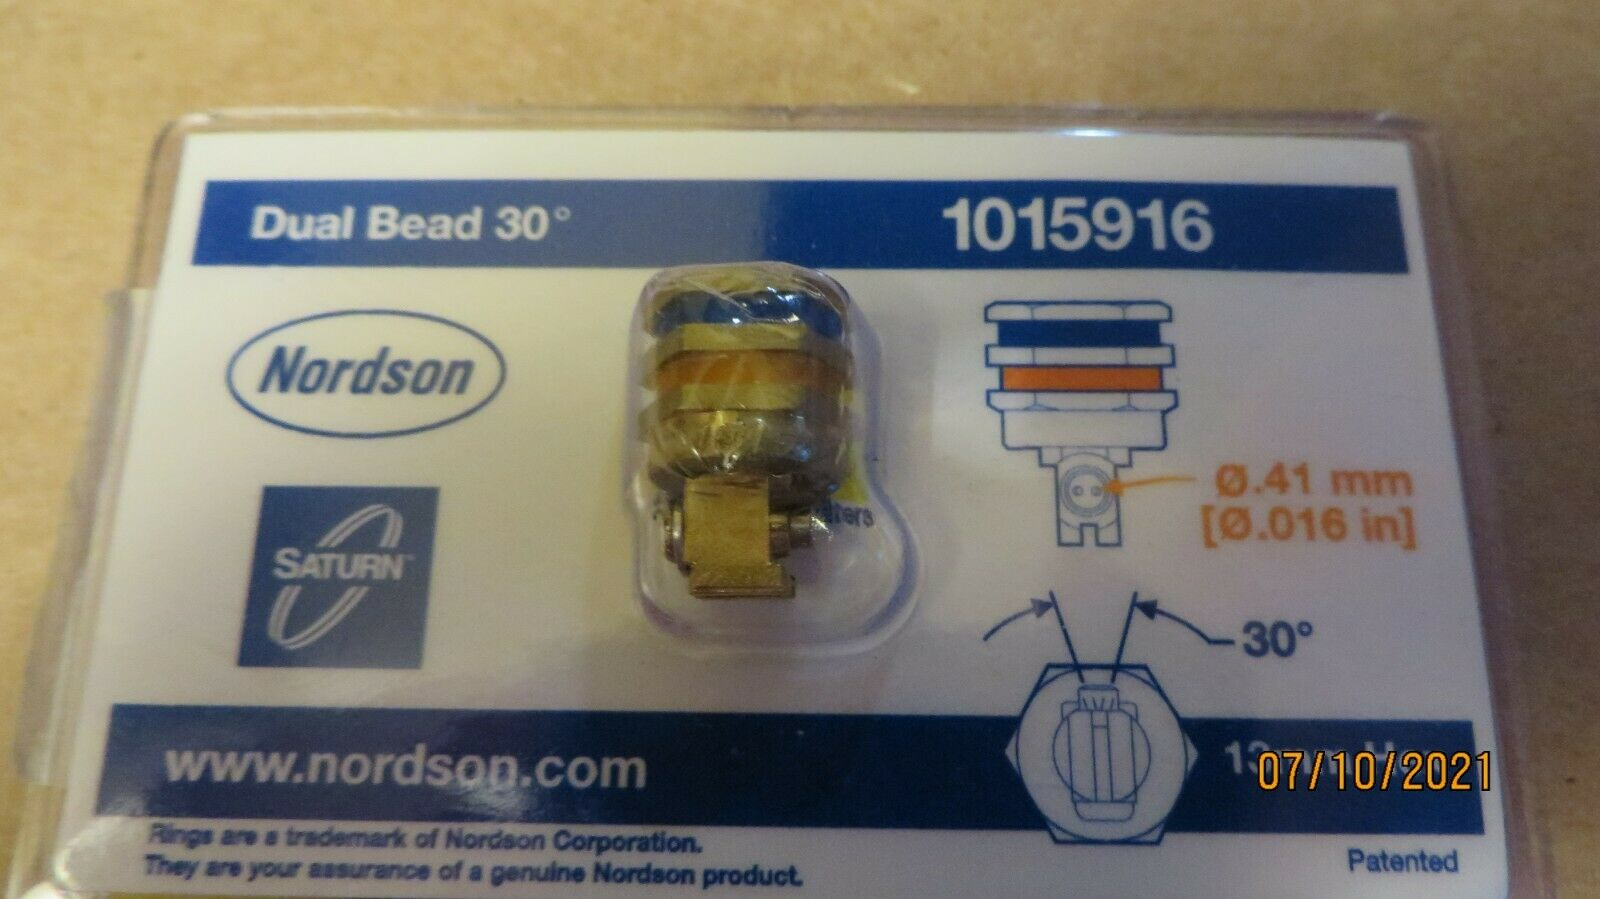 Nordson 1015916 Dual Bead Saturn 30 Deg. Right Angle Nozzle New in OEM Packaging